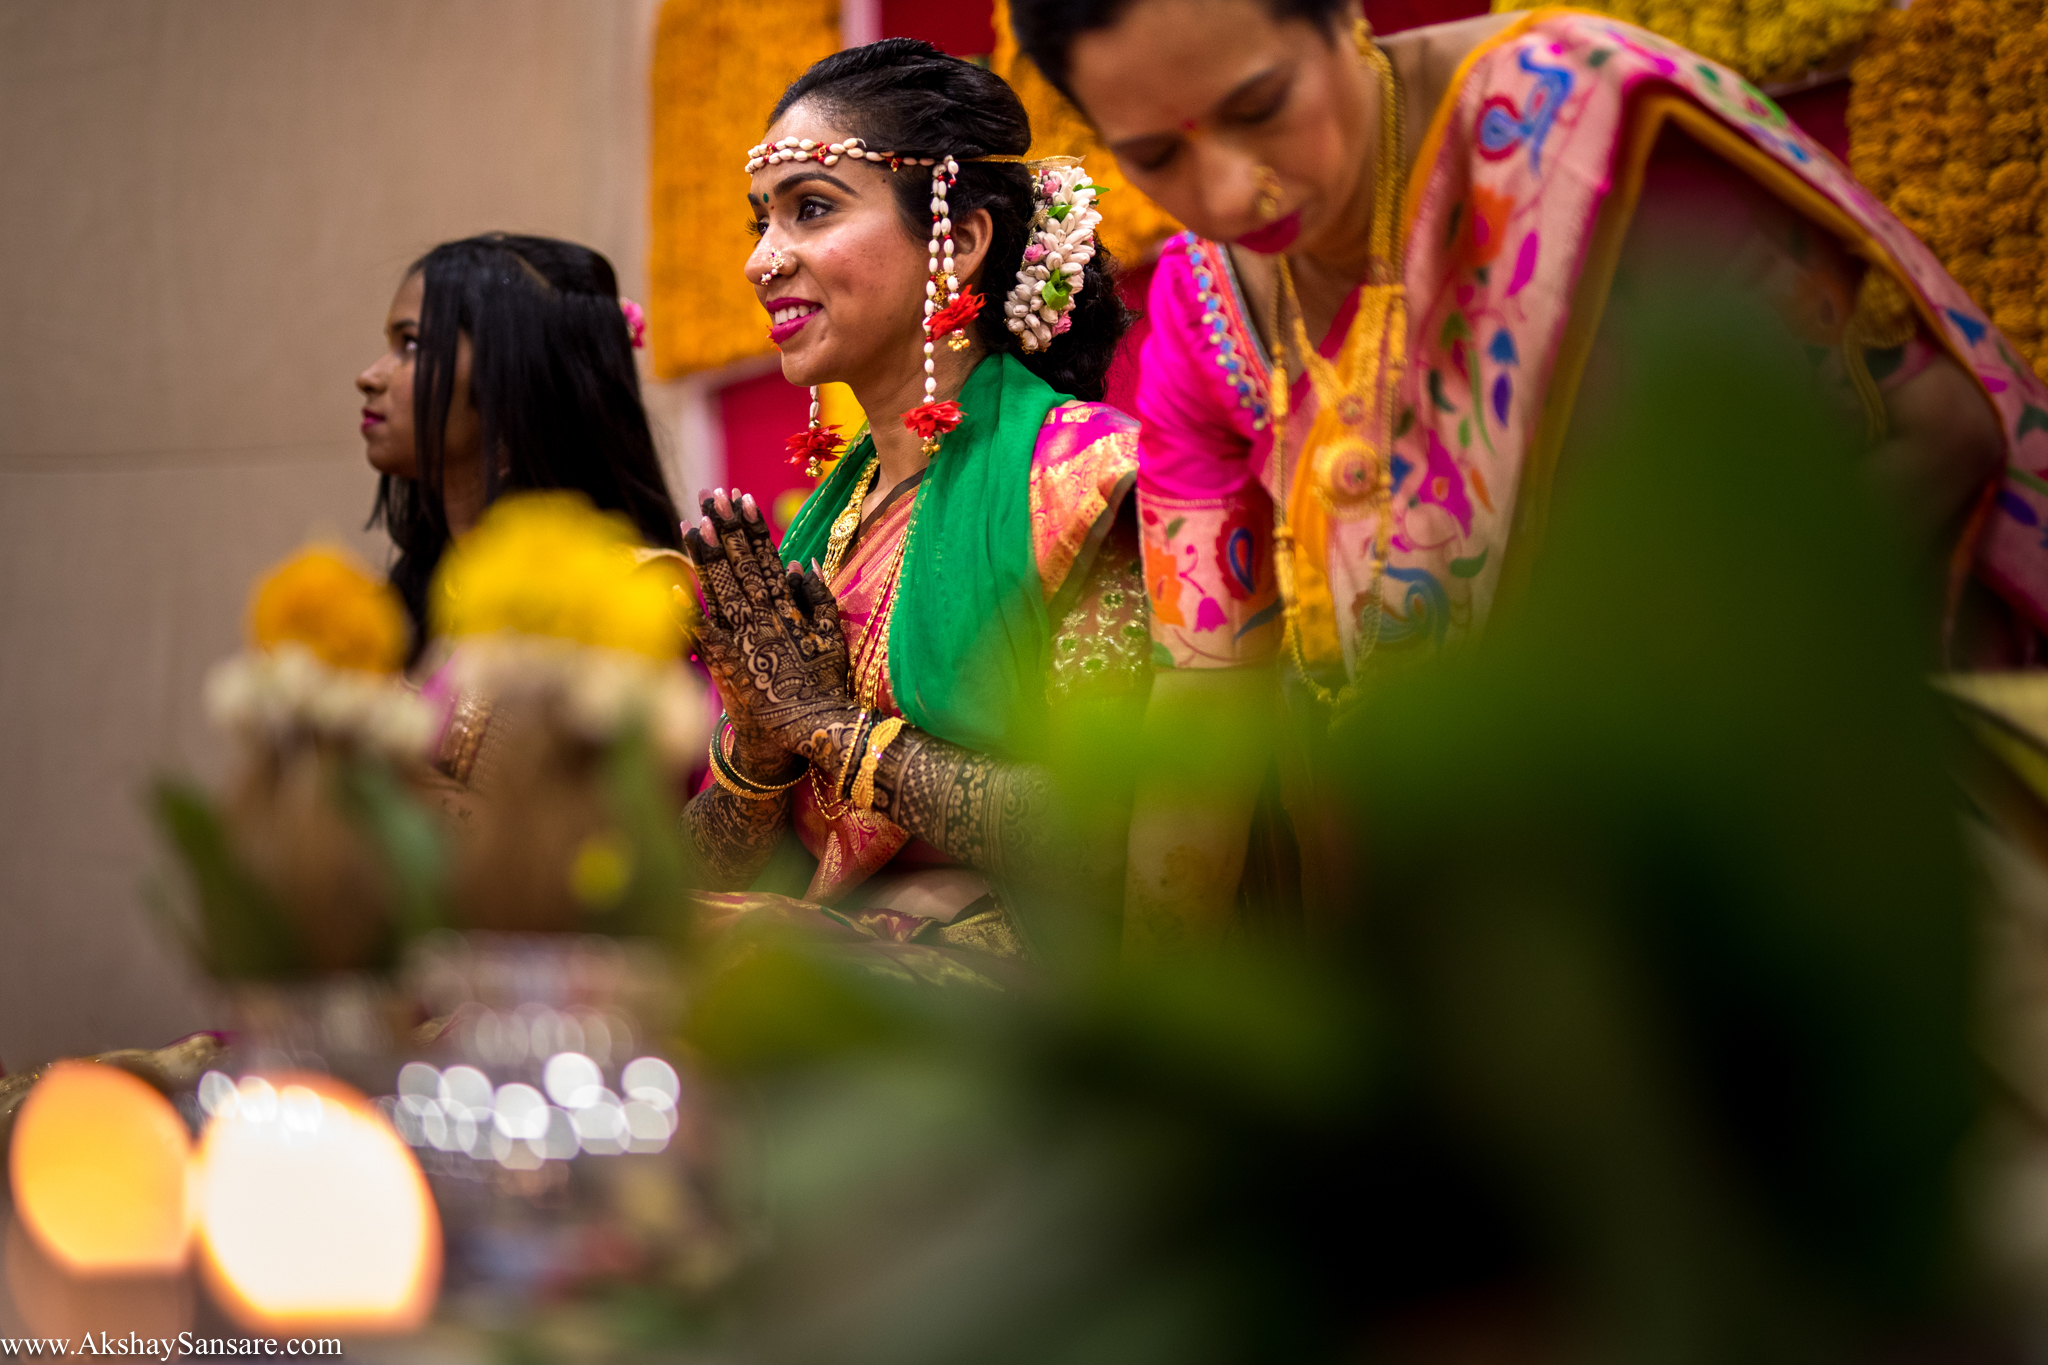 Nupur & Rohan wedding Akshay Sansare Photography best wedding photographer in mumbai India Candid(26).jpg